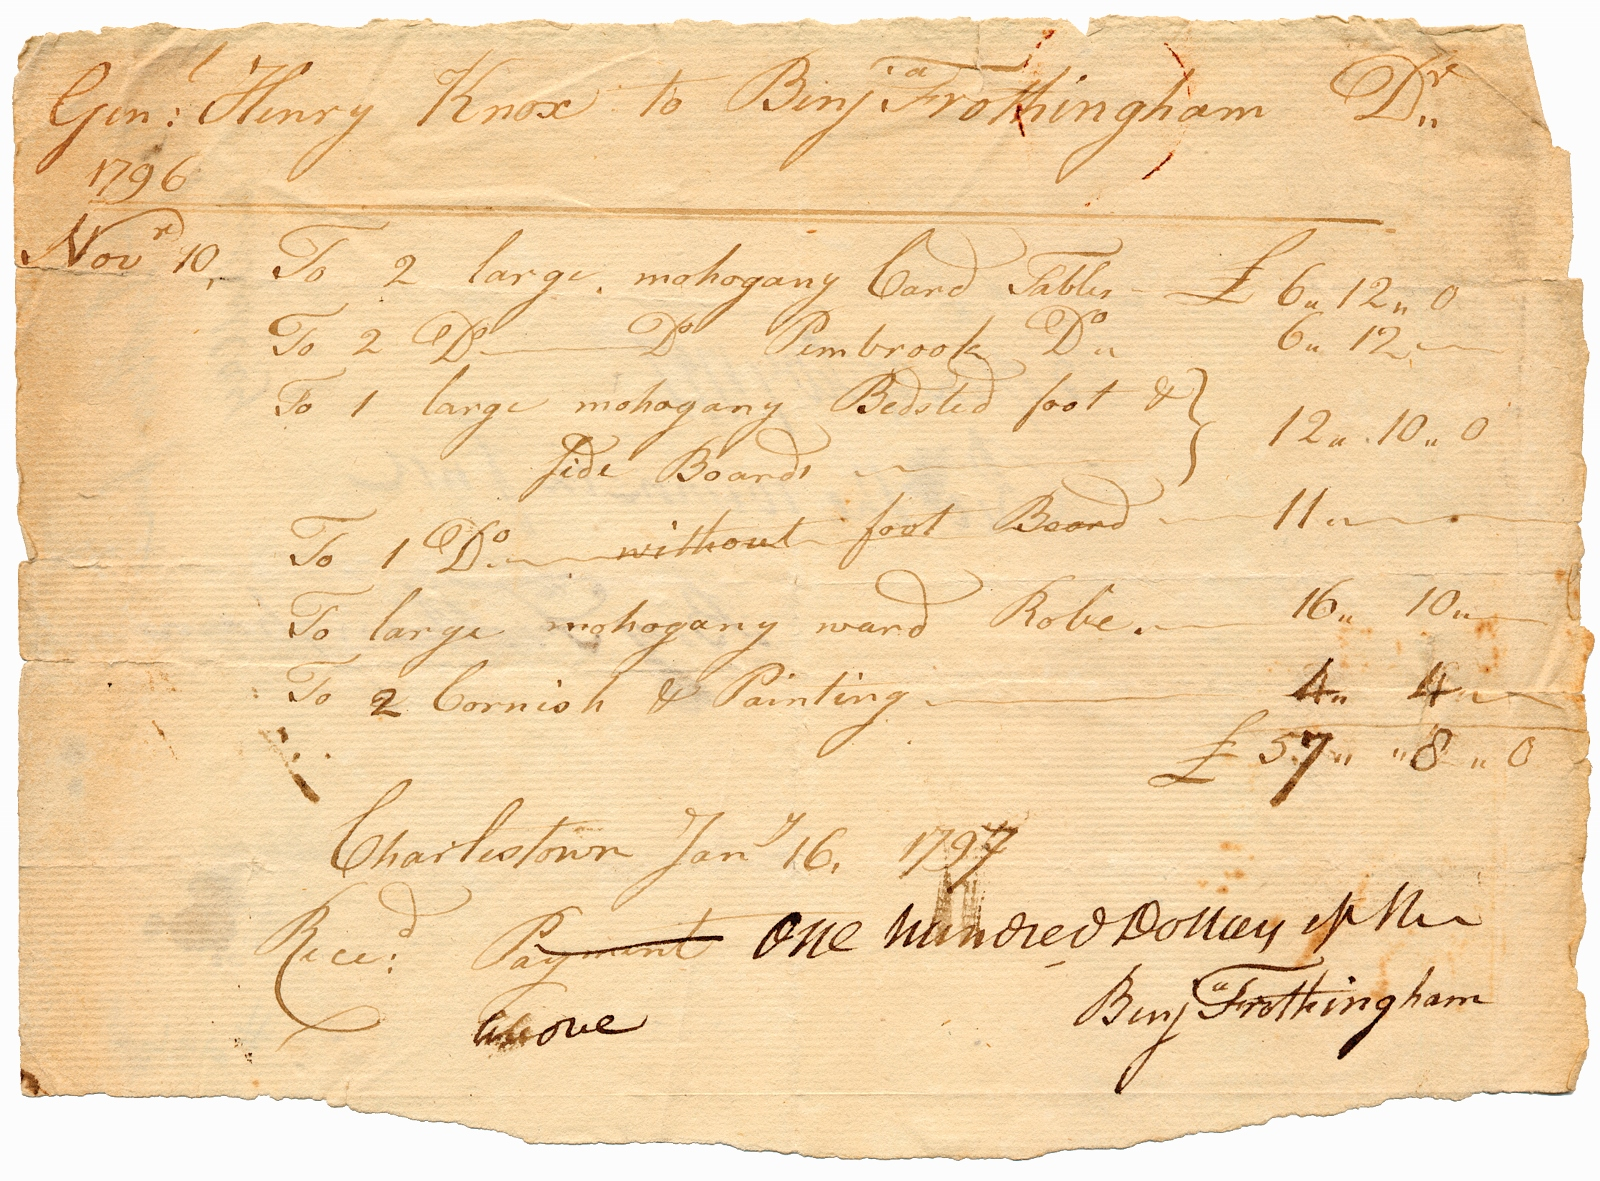 1796_receipt_tables_4poster-1600x1181